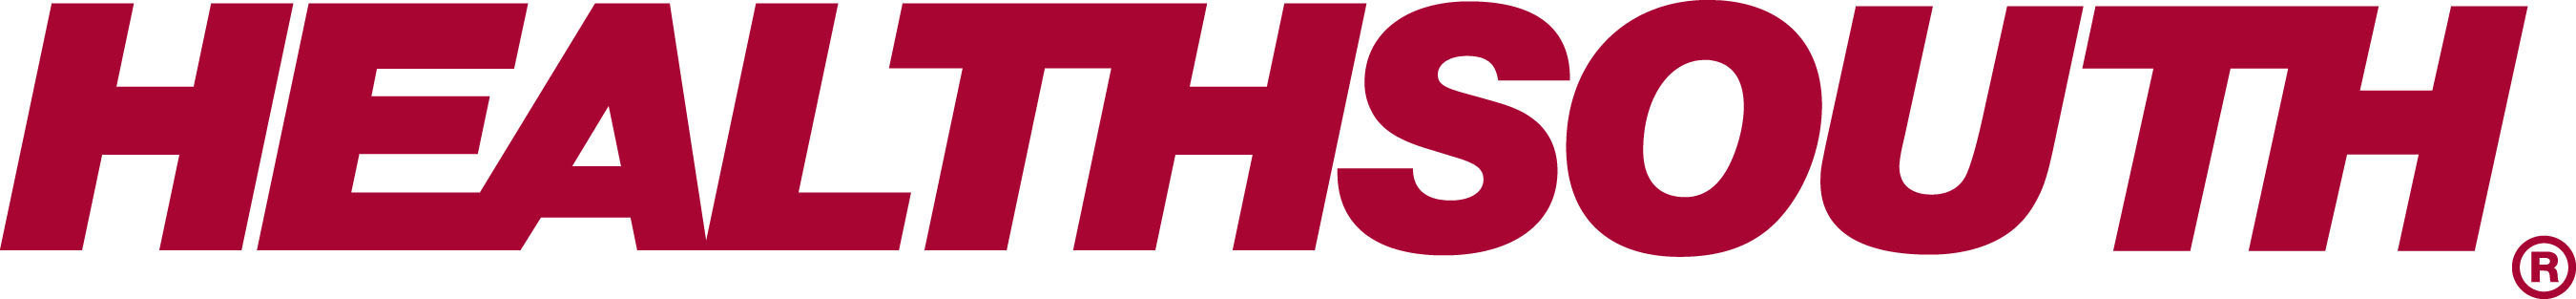 HealthSouth Corporation logo